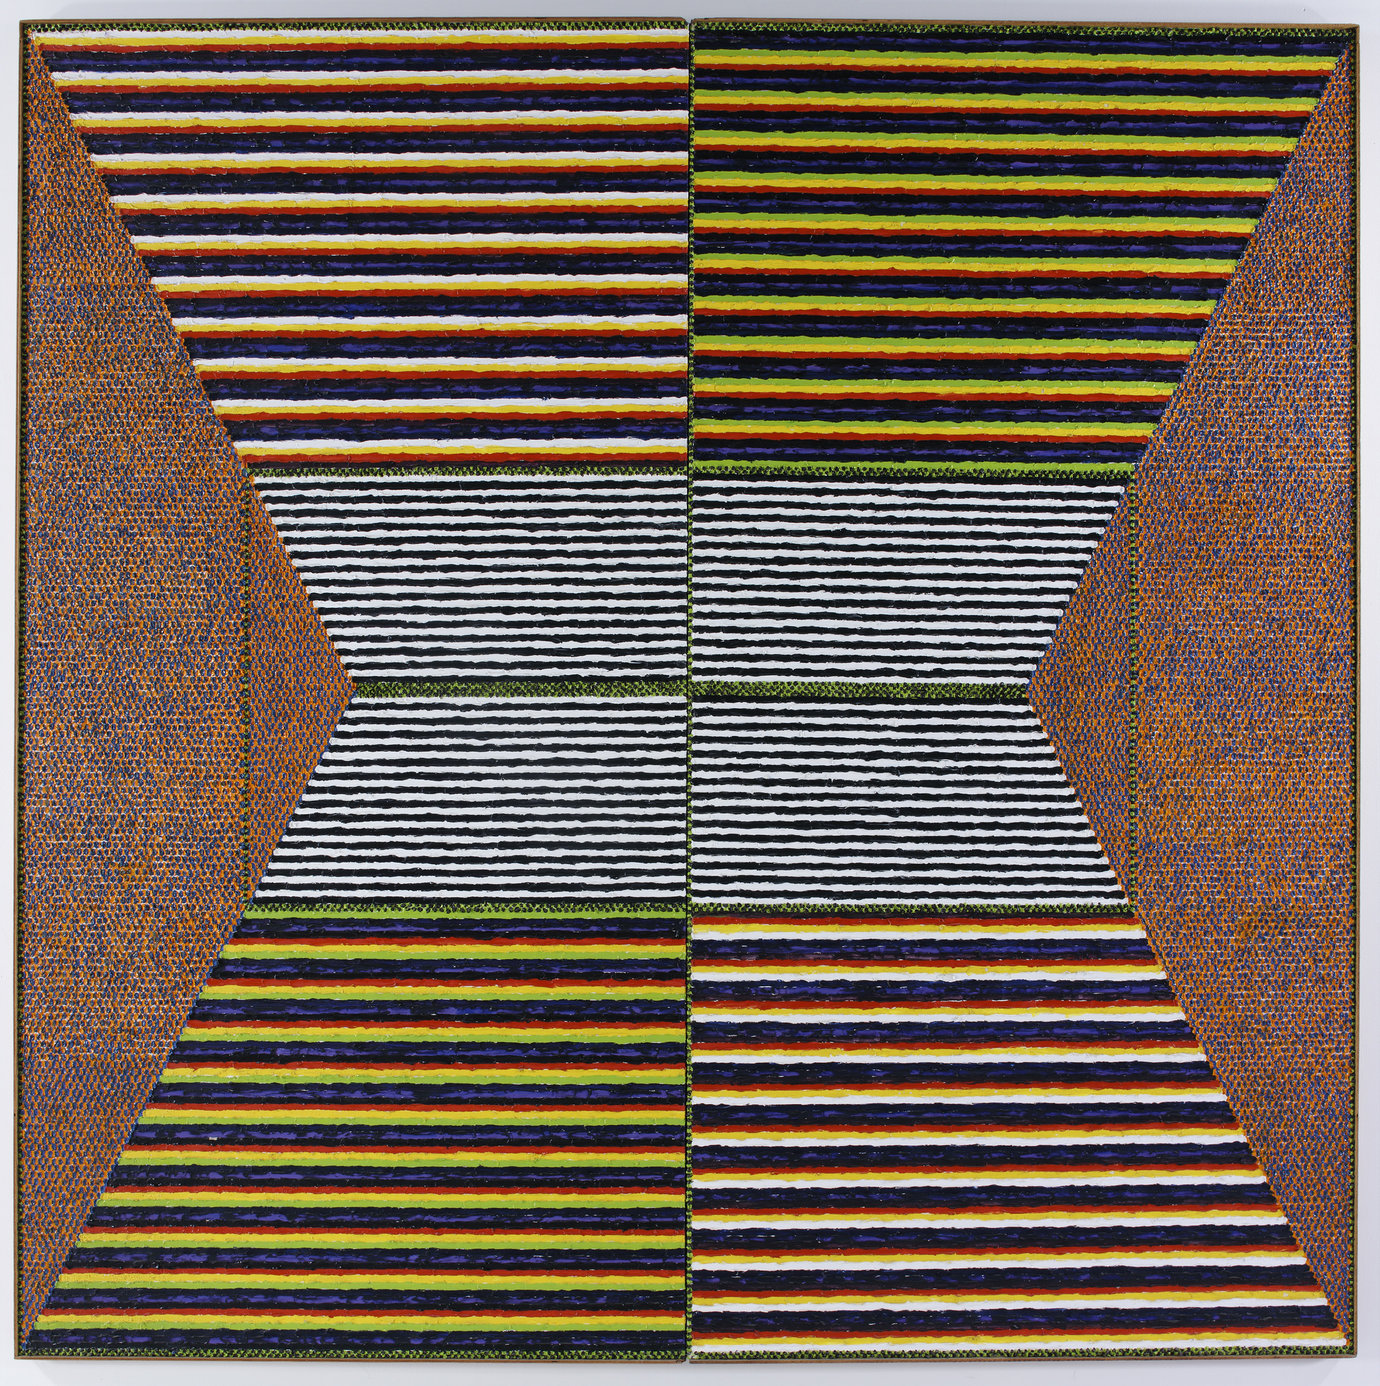 ", 1967. Oil on canvas, 8' 1"" x 8' 1"" (246.4 cm x 246.4 cm)."